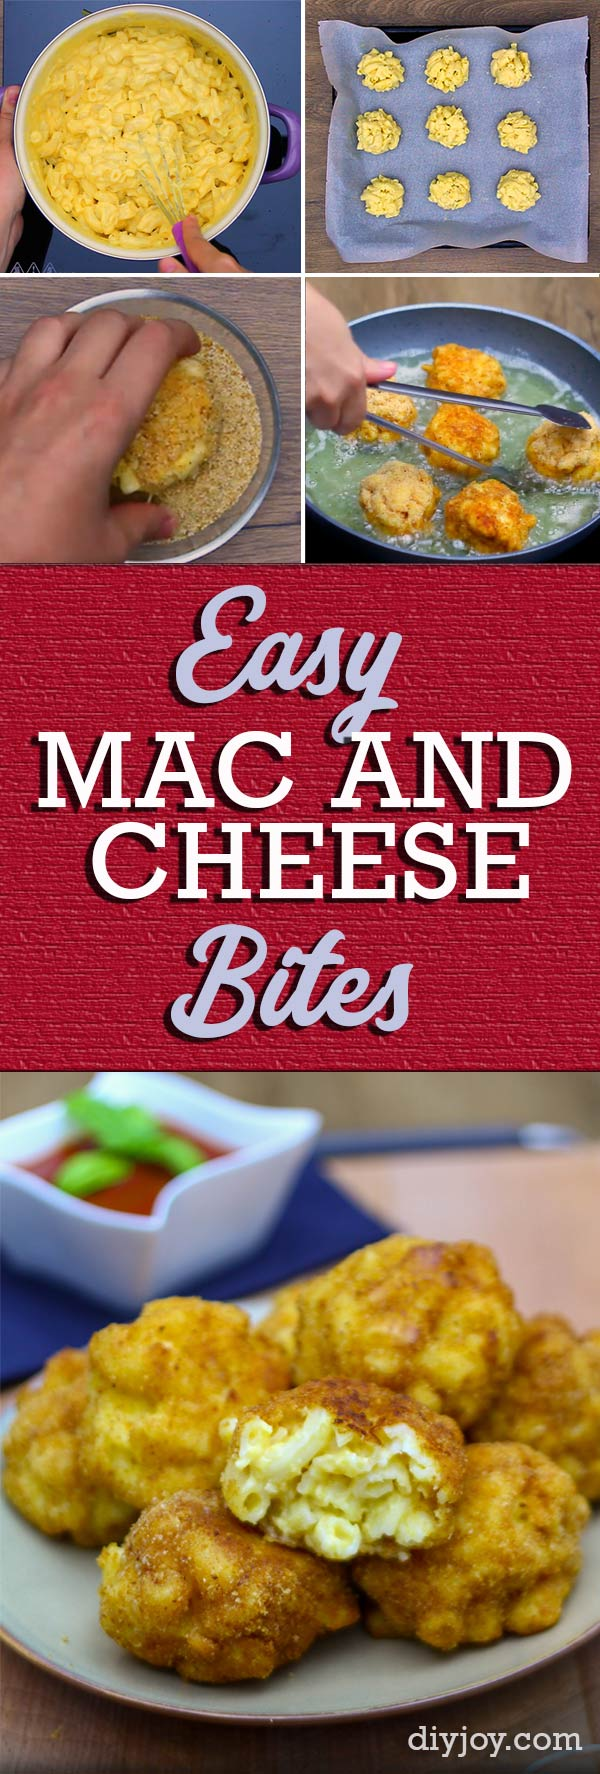 Easy Appetizer Recipes - Fried Macaroni and Cheese Bites Are the Perfect Party Food for A Crowd - Recipe Idea for Simple Snacks to Make At Home